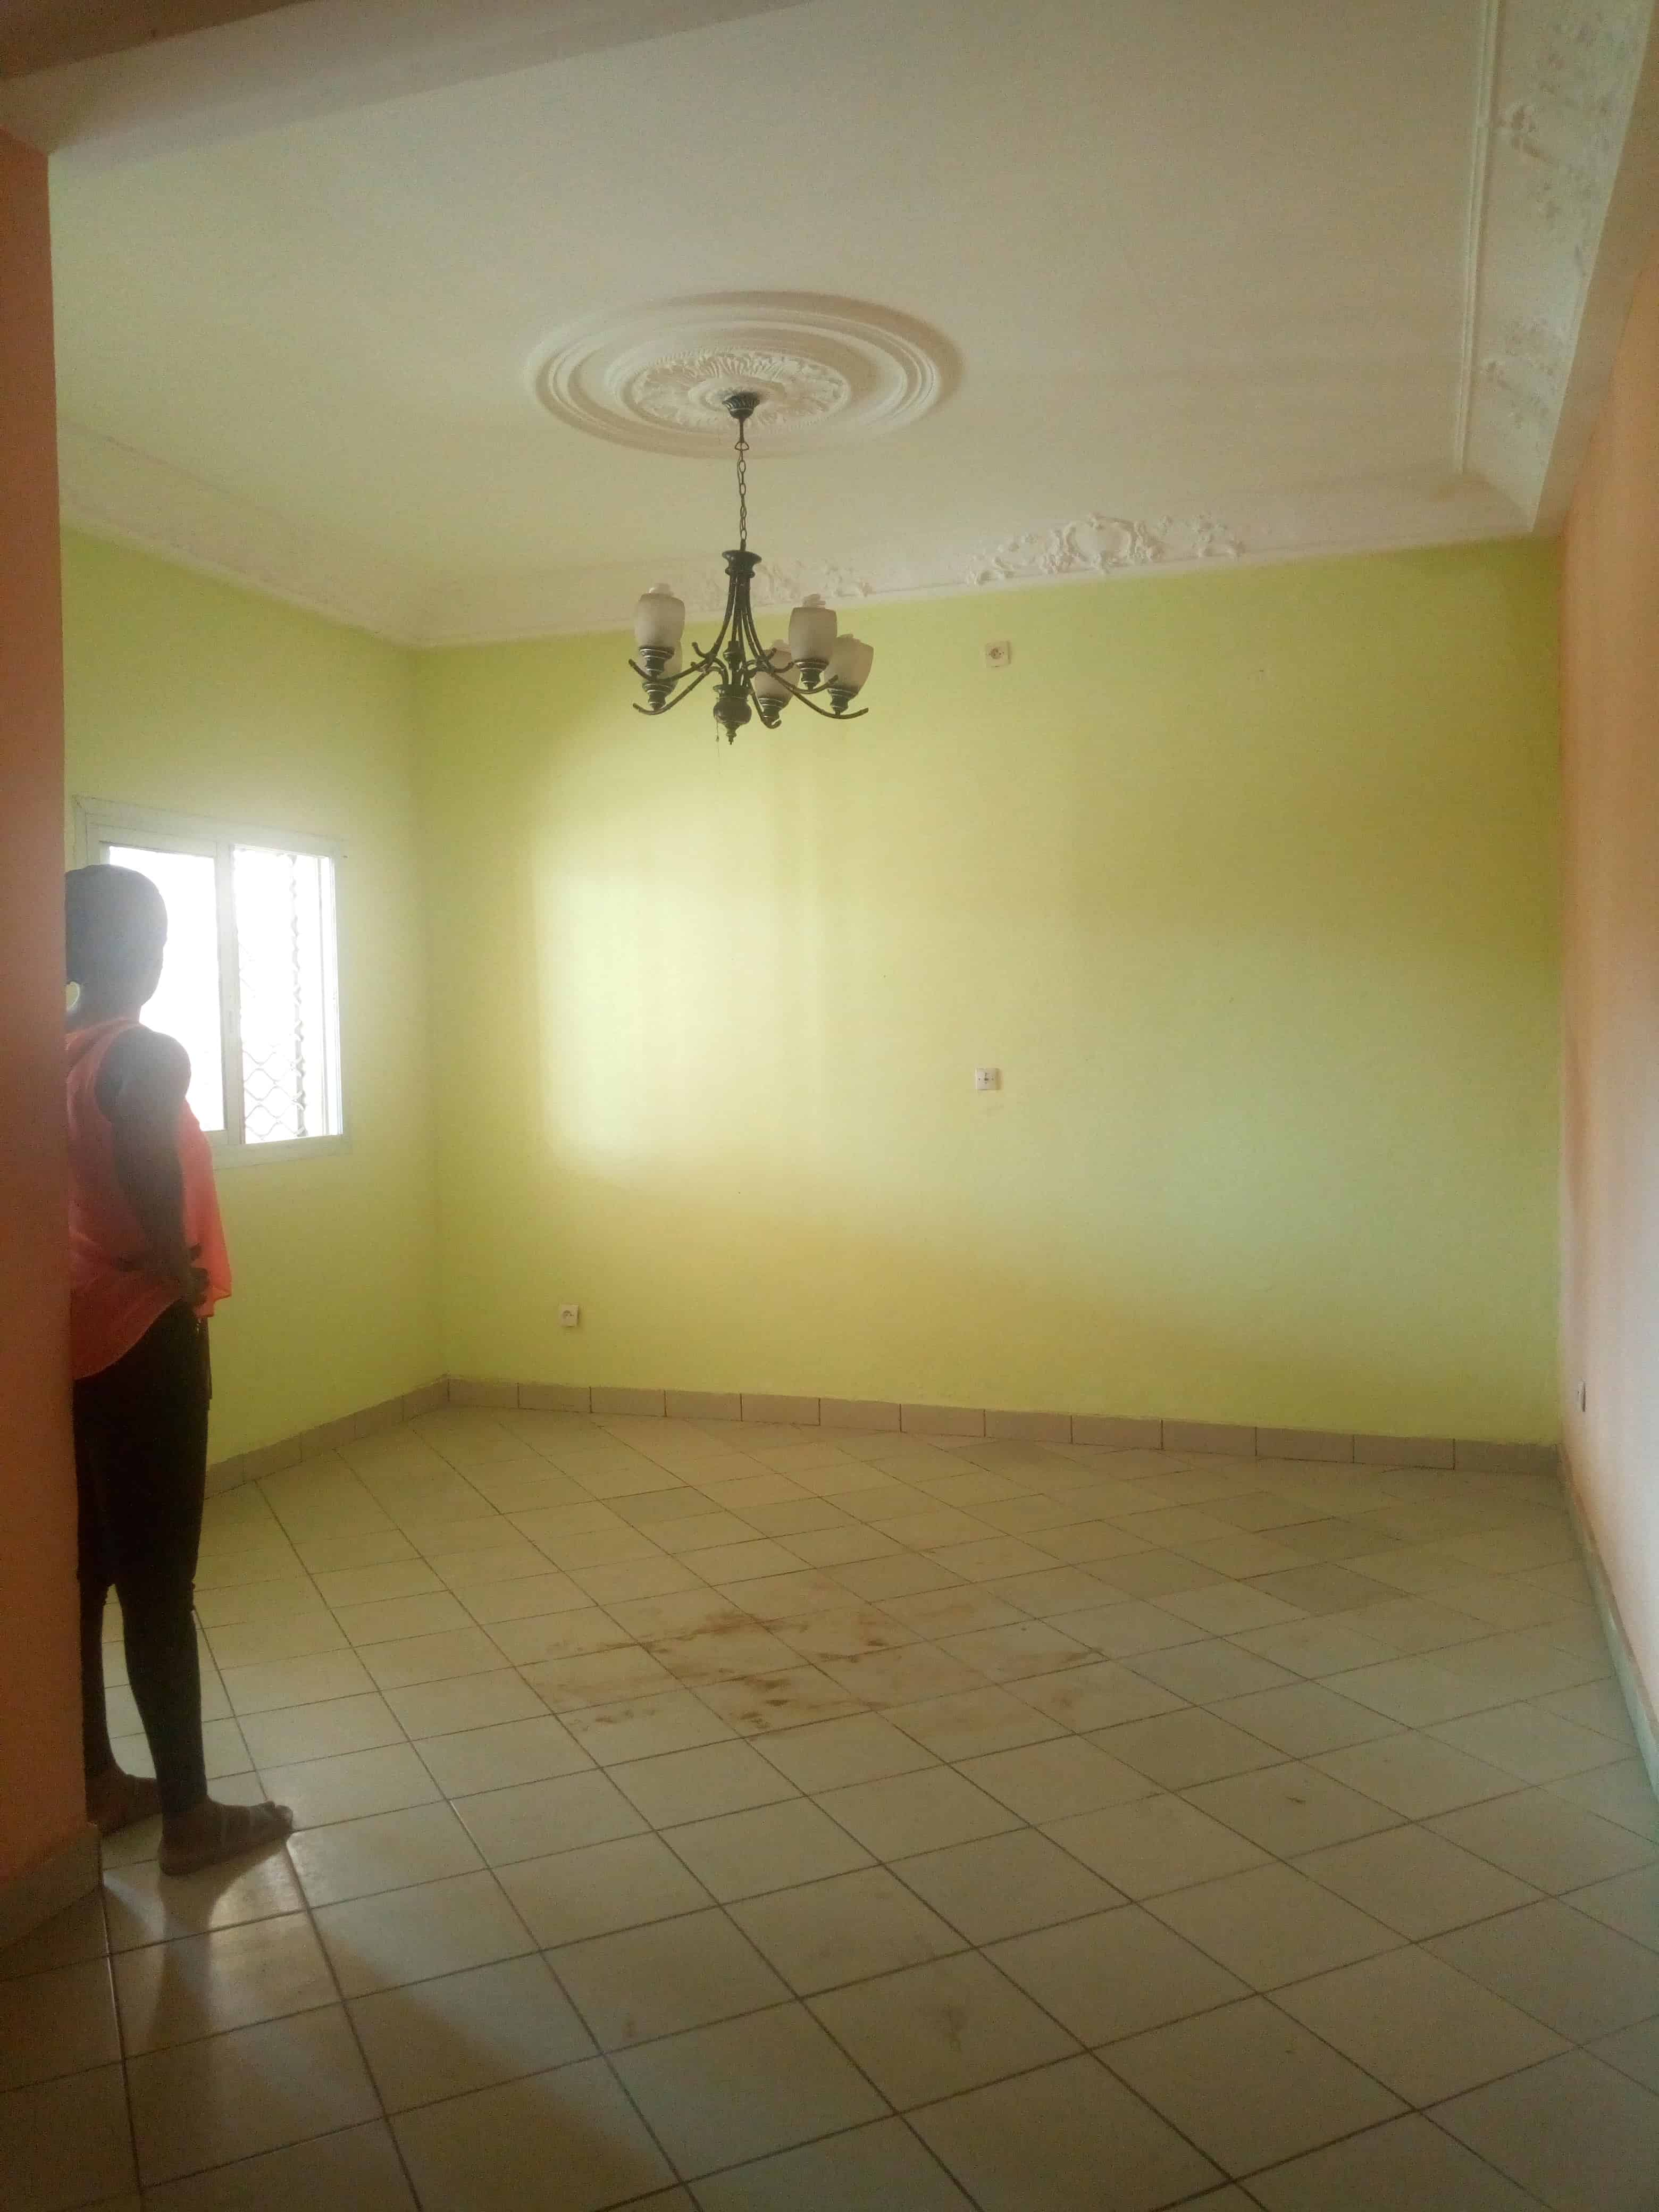 Apartment to rent - Douala, Makepe, Rond pauleng - 1 living room(s), 2 bedroom(s), 2 bathroom(s) - 110 000 FCFA / month